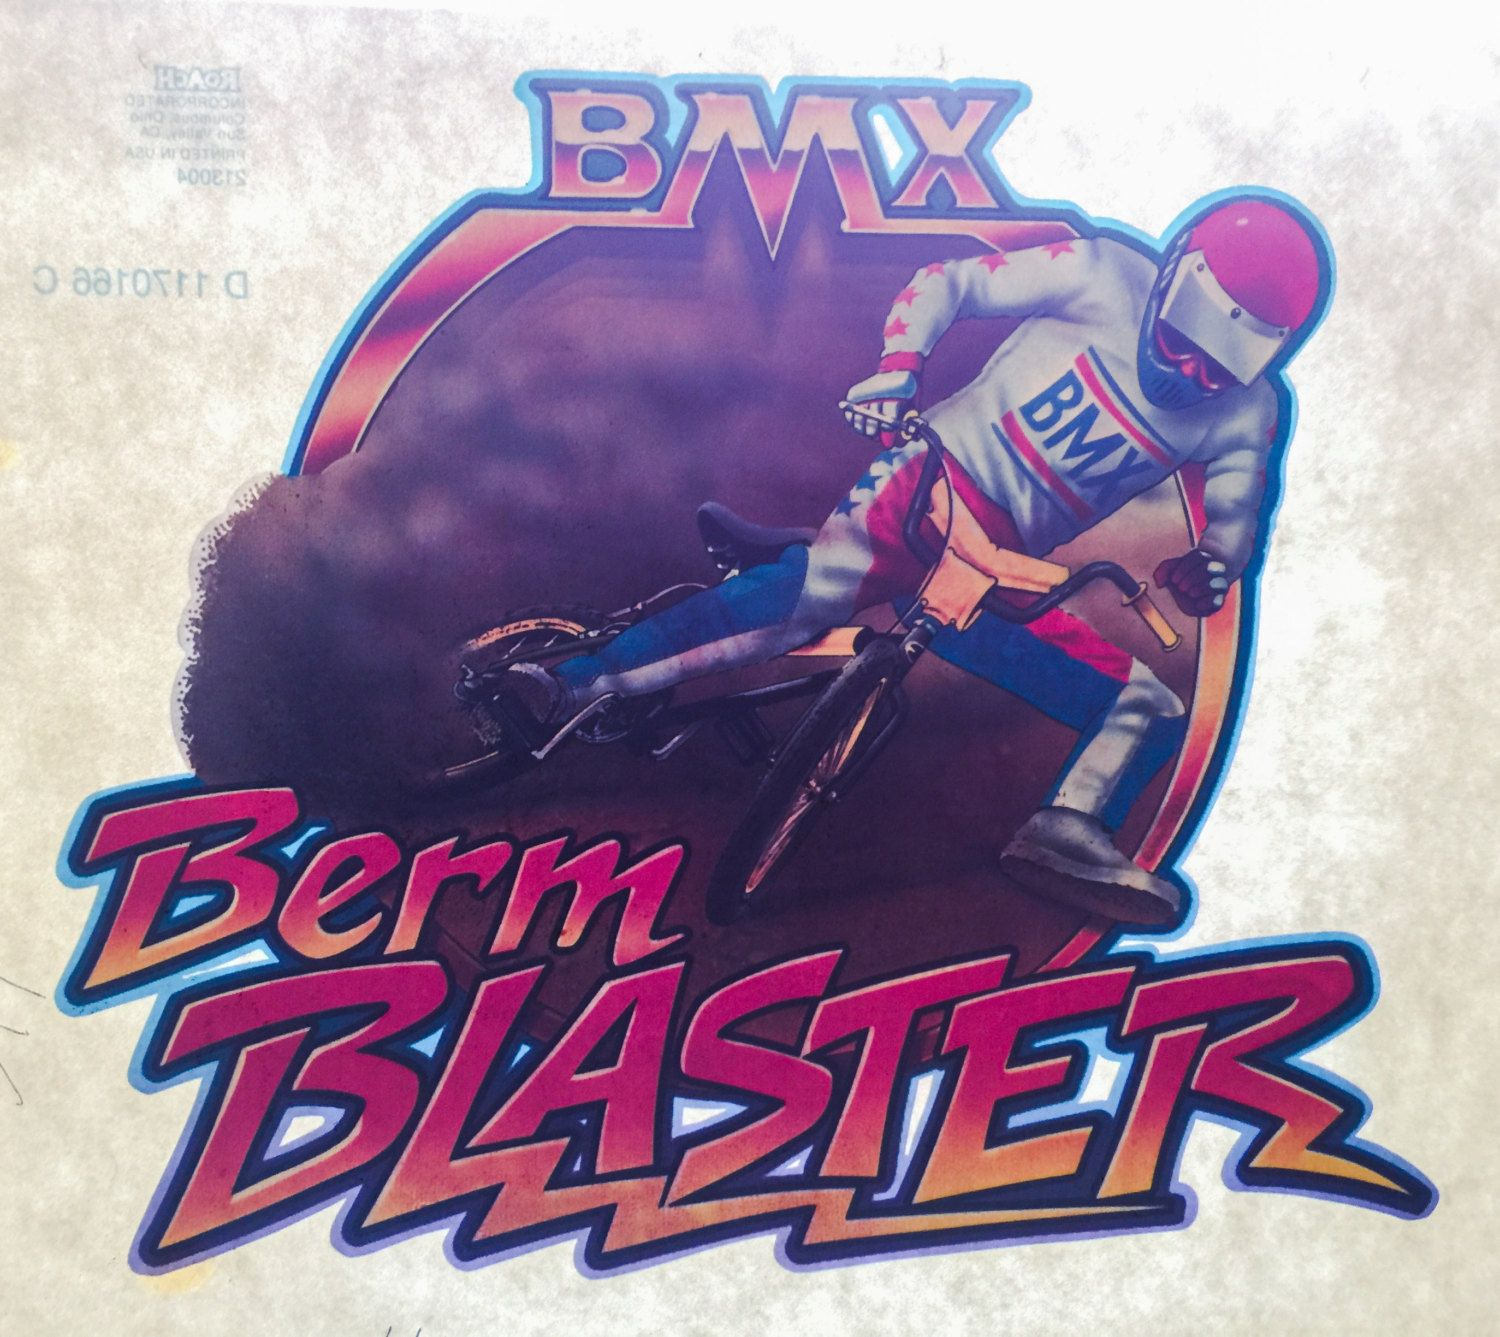 BMX Berm Blaster Vintage Roach Incorporated Iron On Heat Transfer by VintageIronOn on Etsy